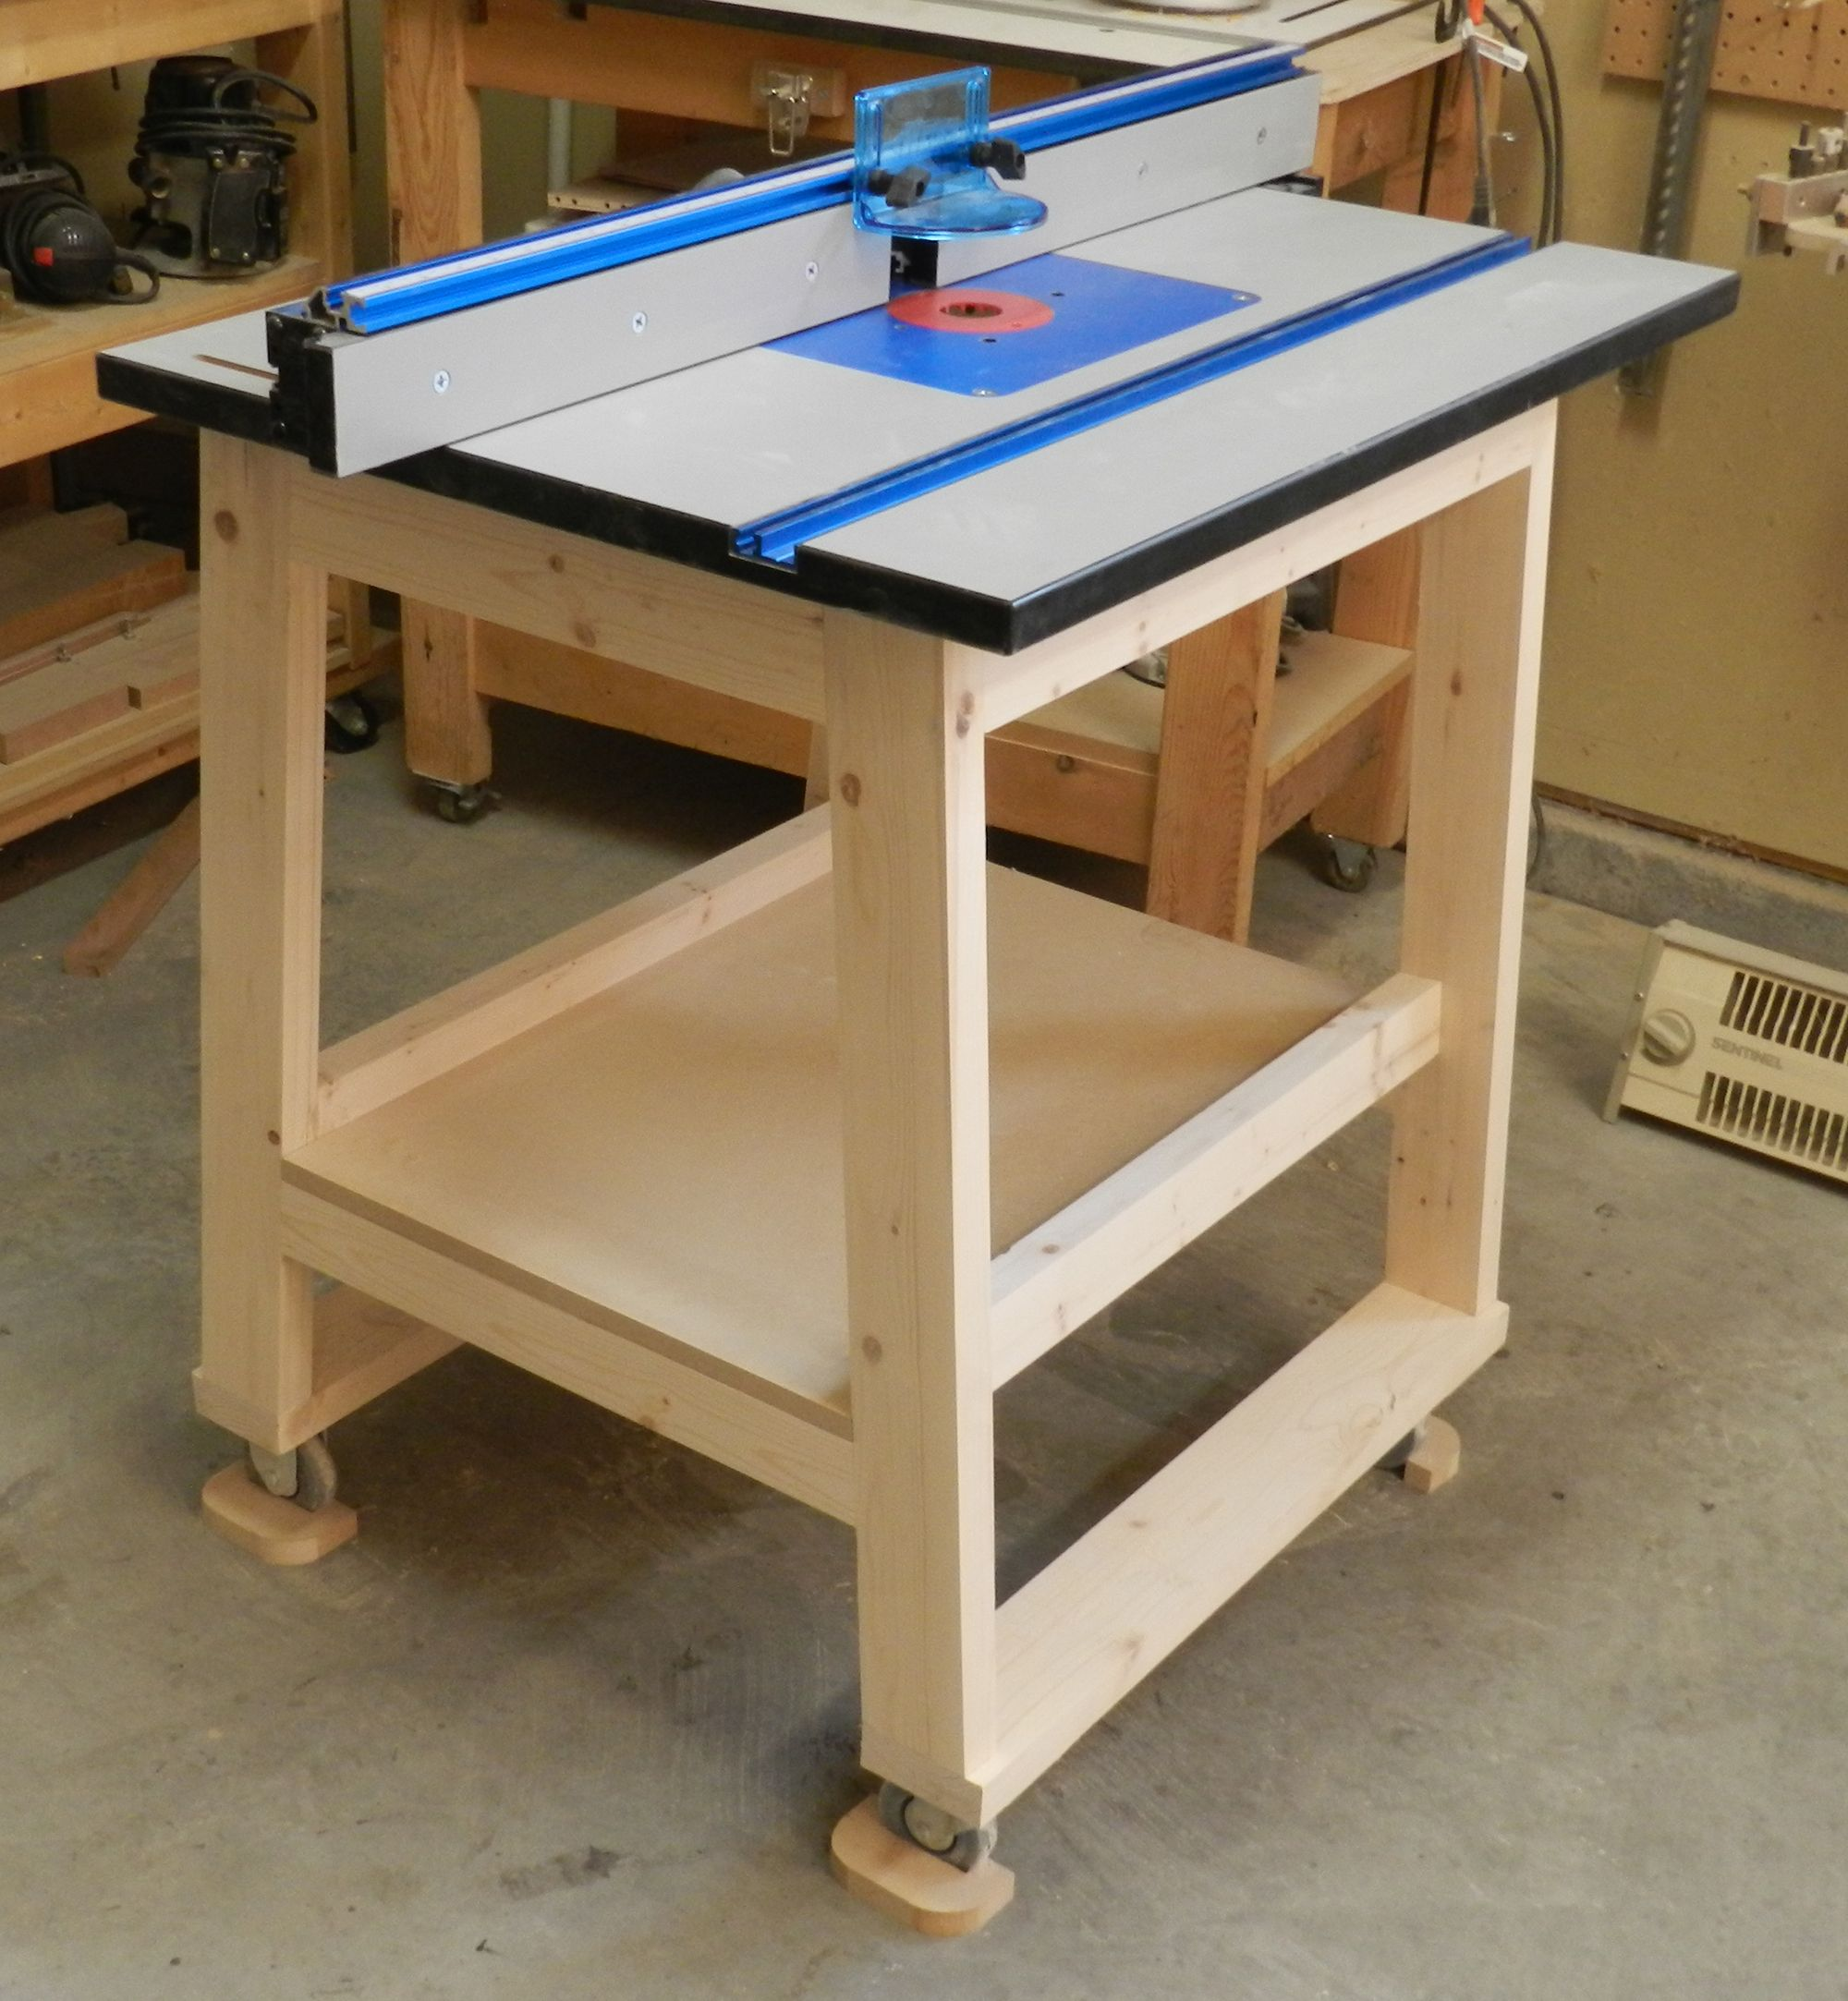 Wooden kreg router table plans diy blueprints kreg router table wooden kreg router table plans diy blueprints kreg router table plans 2 in 1 outdoor games or shaper 5 new kreg videos 5 new kreg jig project plans from ana greentooth